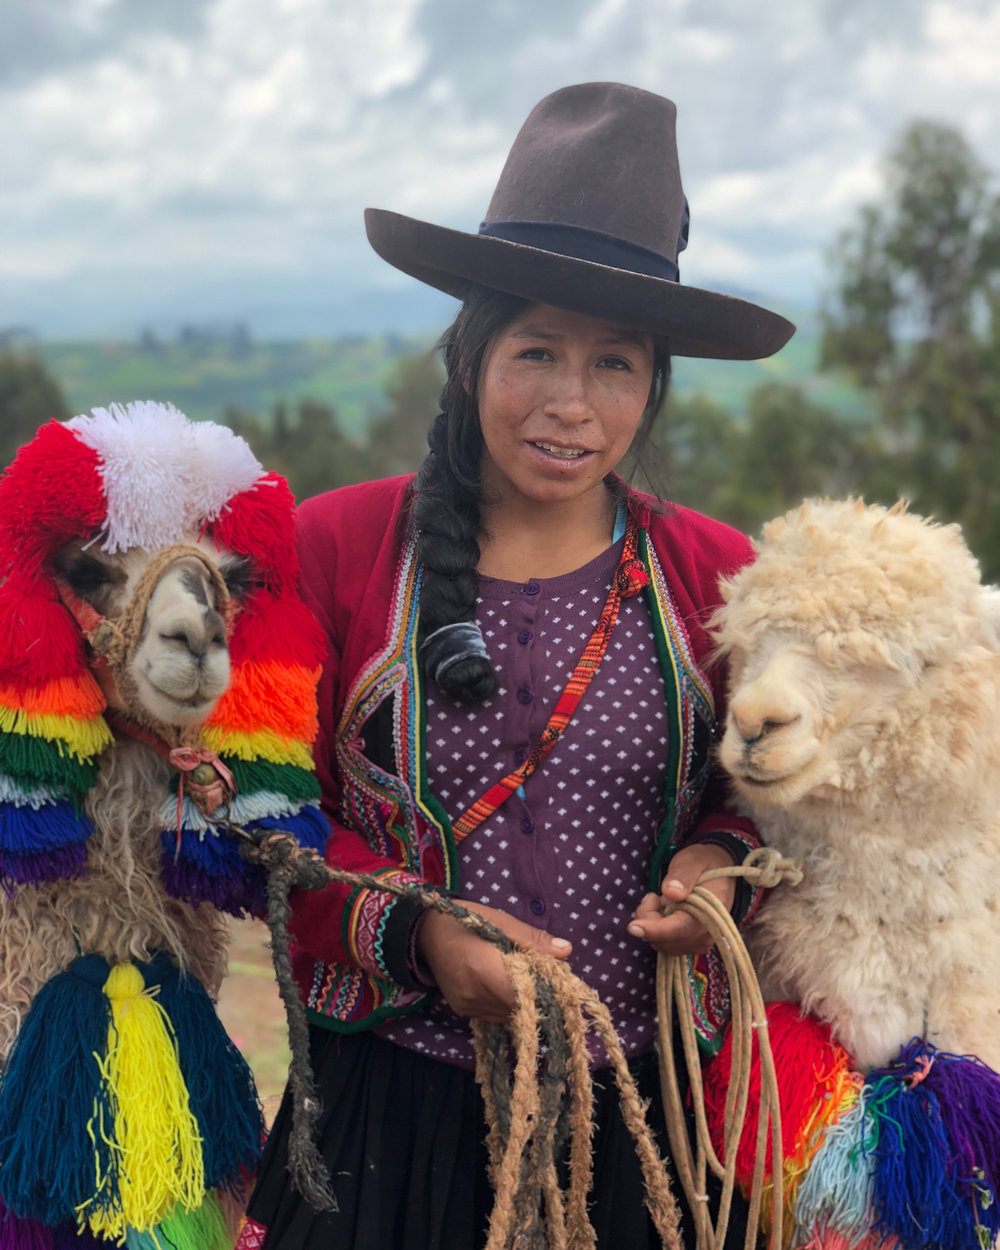 """I really appreciate that this program had so many cultures represented. It was one of my favorite aspects… I loved engaging and with the local community in Lima - having real conversations with people in the community and even the opportunities to give back and invest in the local community."" -"